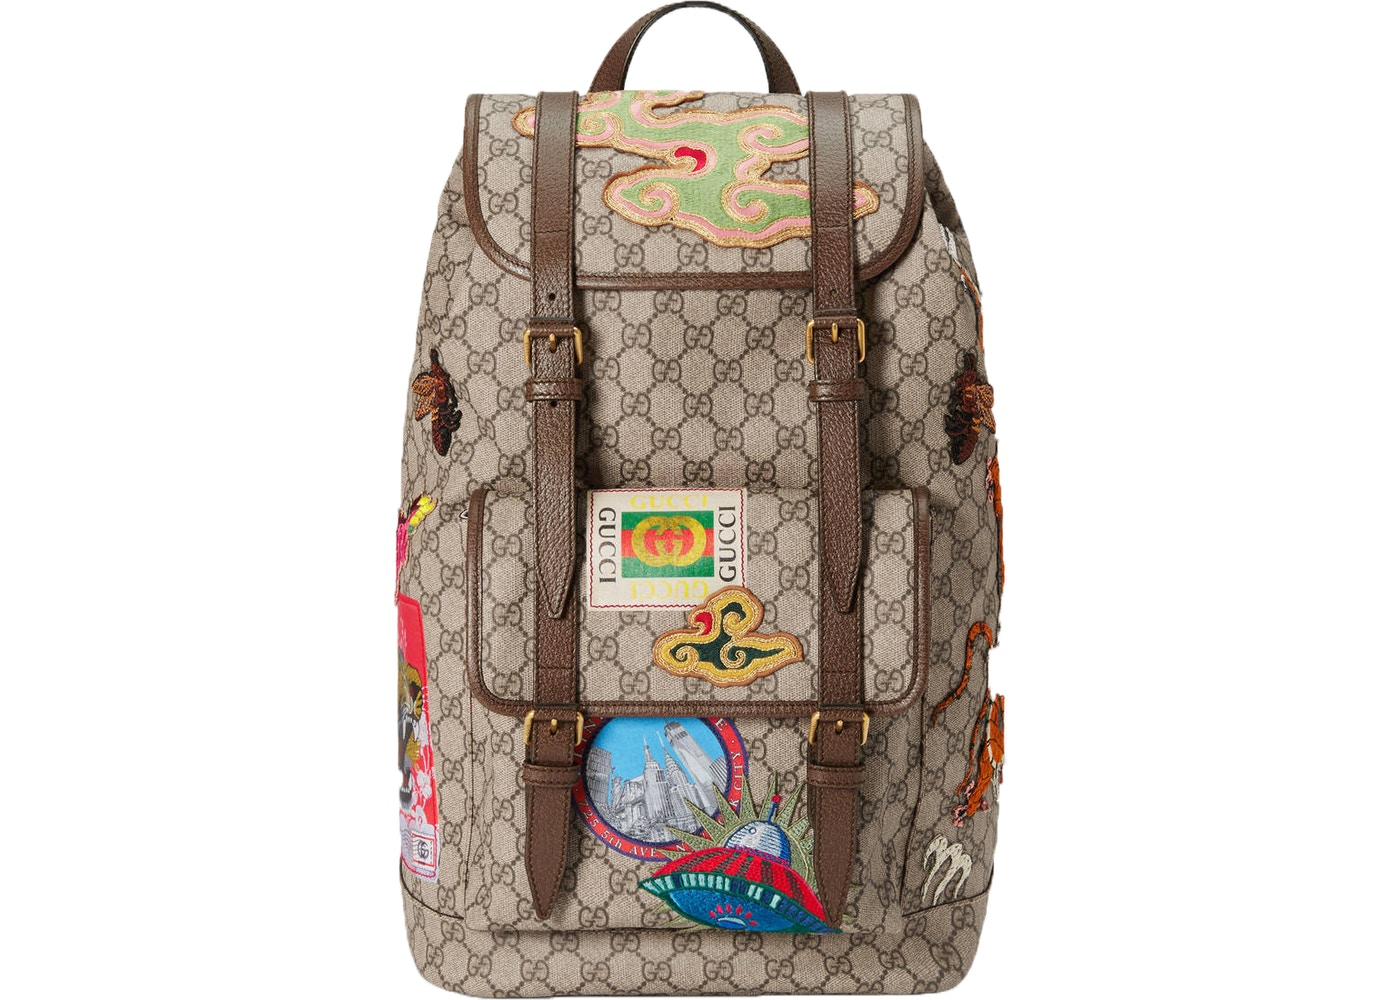 1146faa7742 Gucci Courrier Soft Backpack GG Supreme Embroidered Patches ...